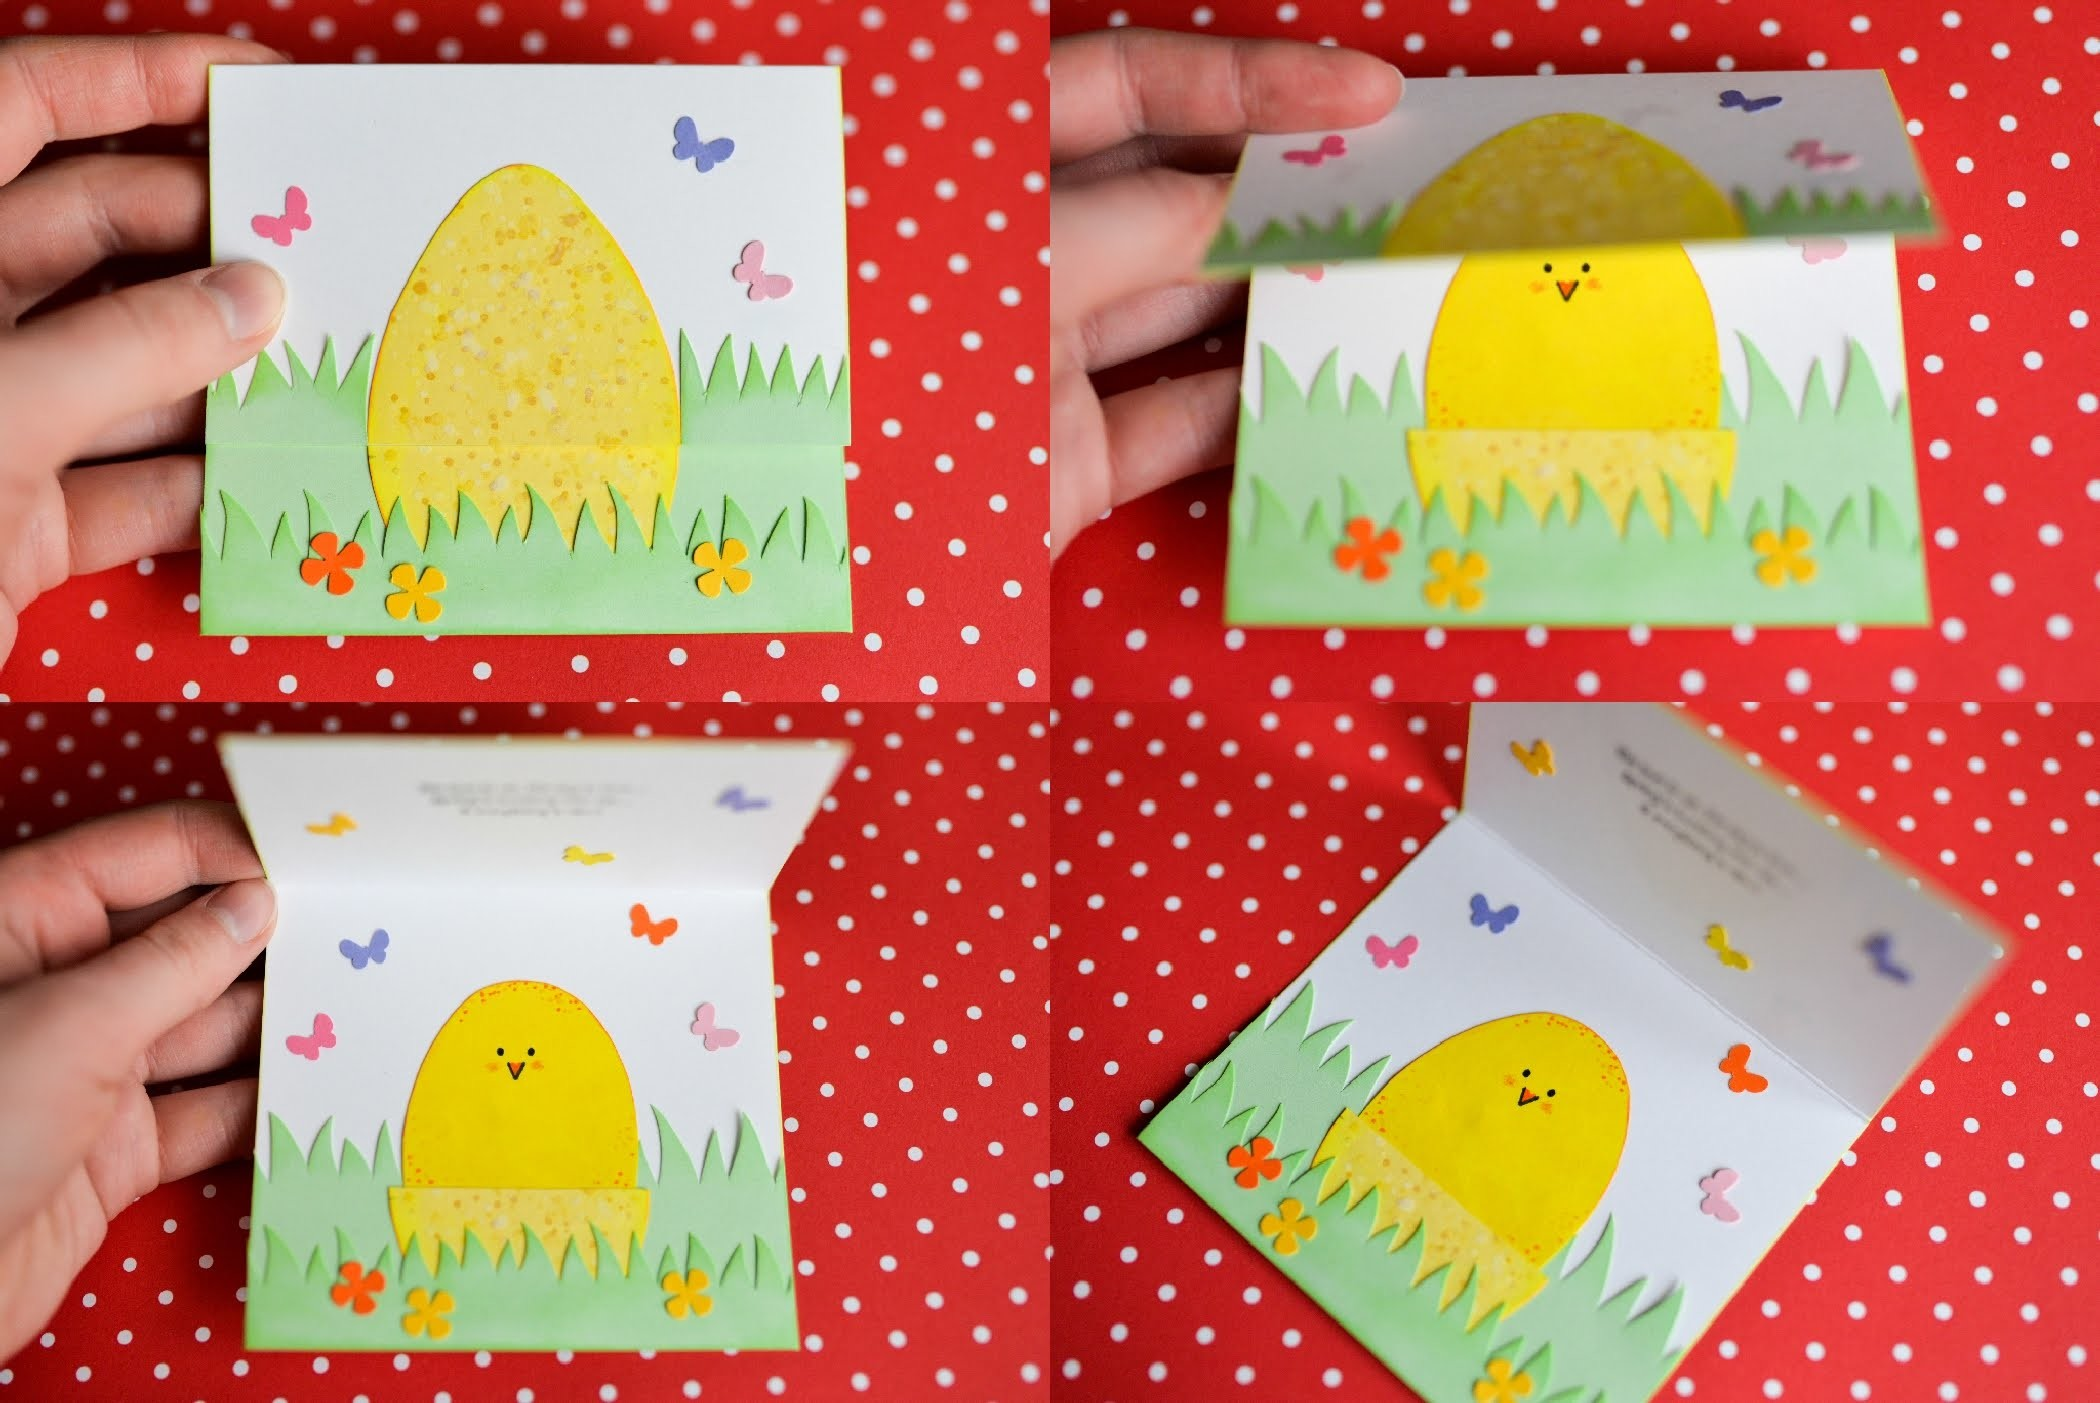 How to Make - Easter Egg Spring Card - Step by Step | Kartka Wielkanocna